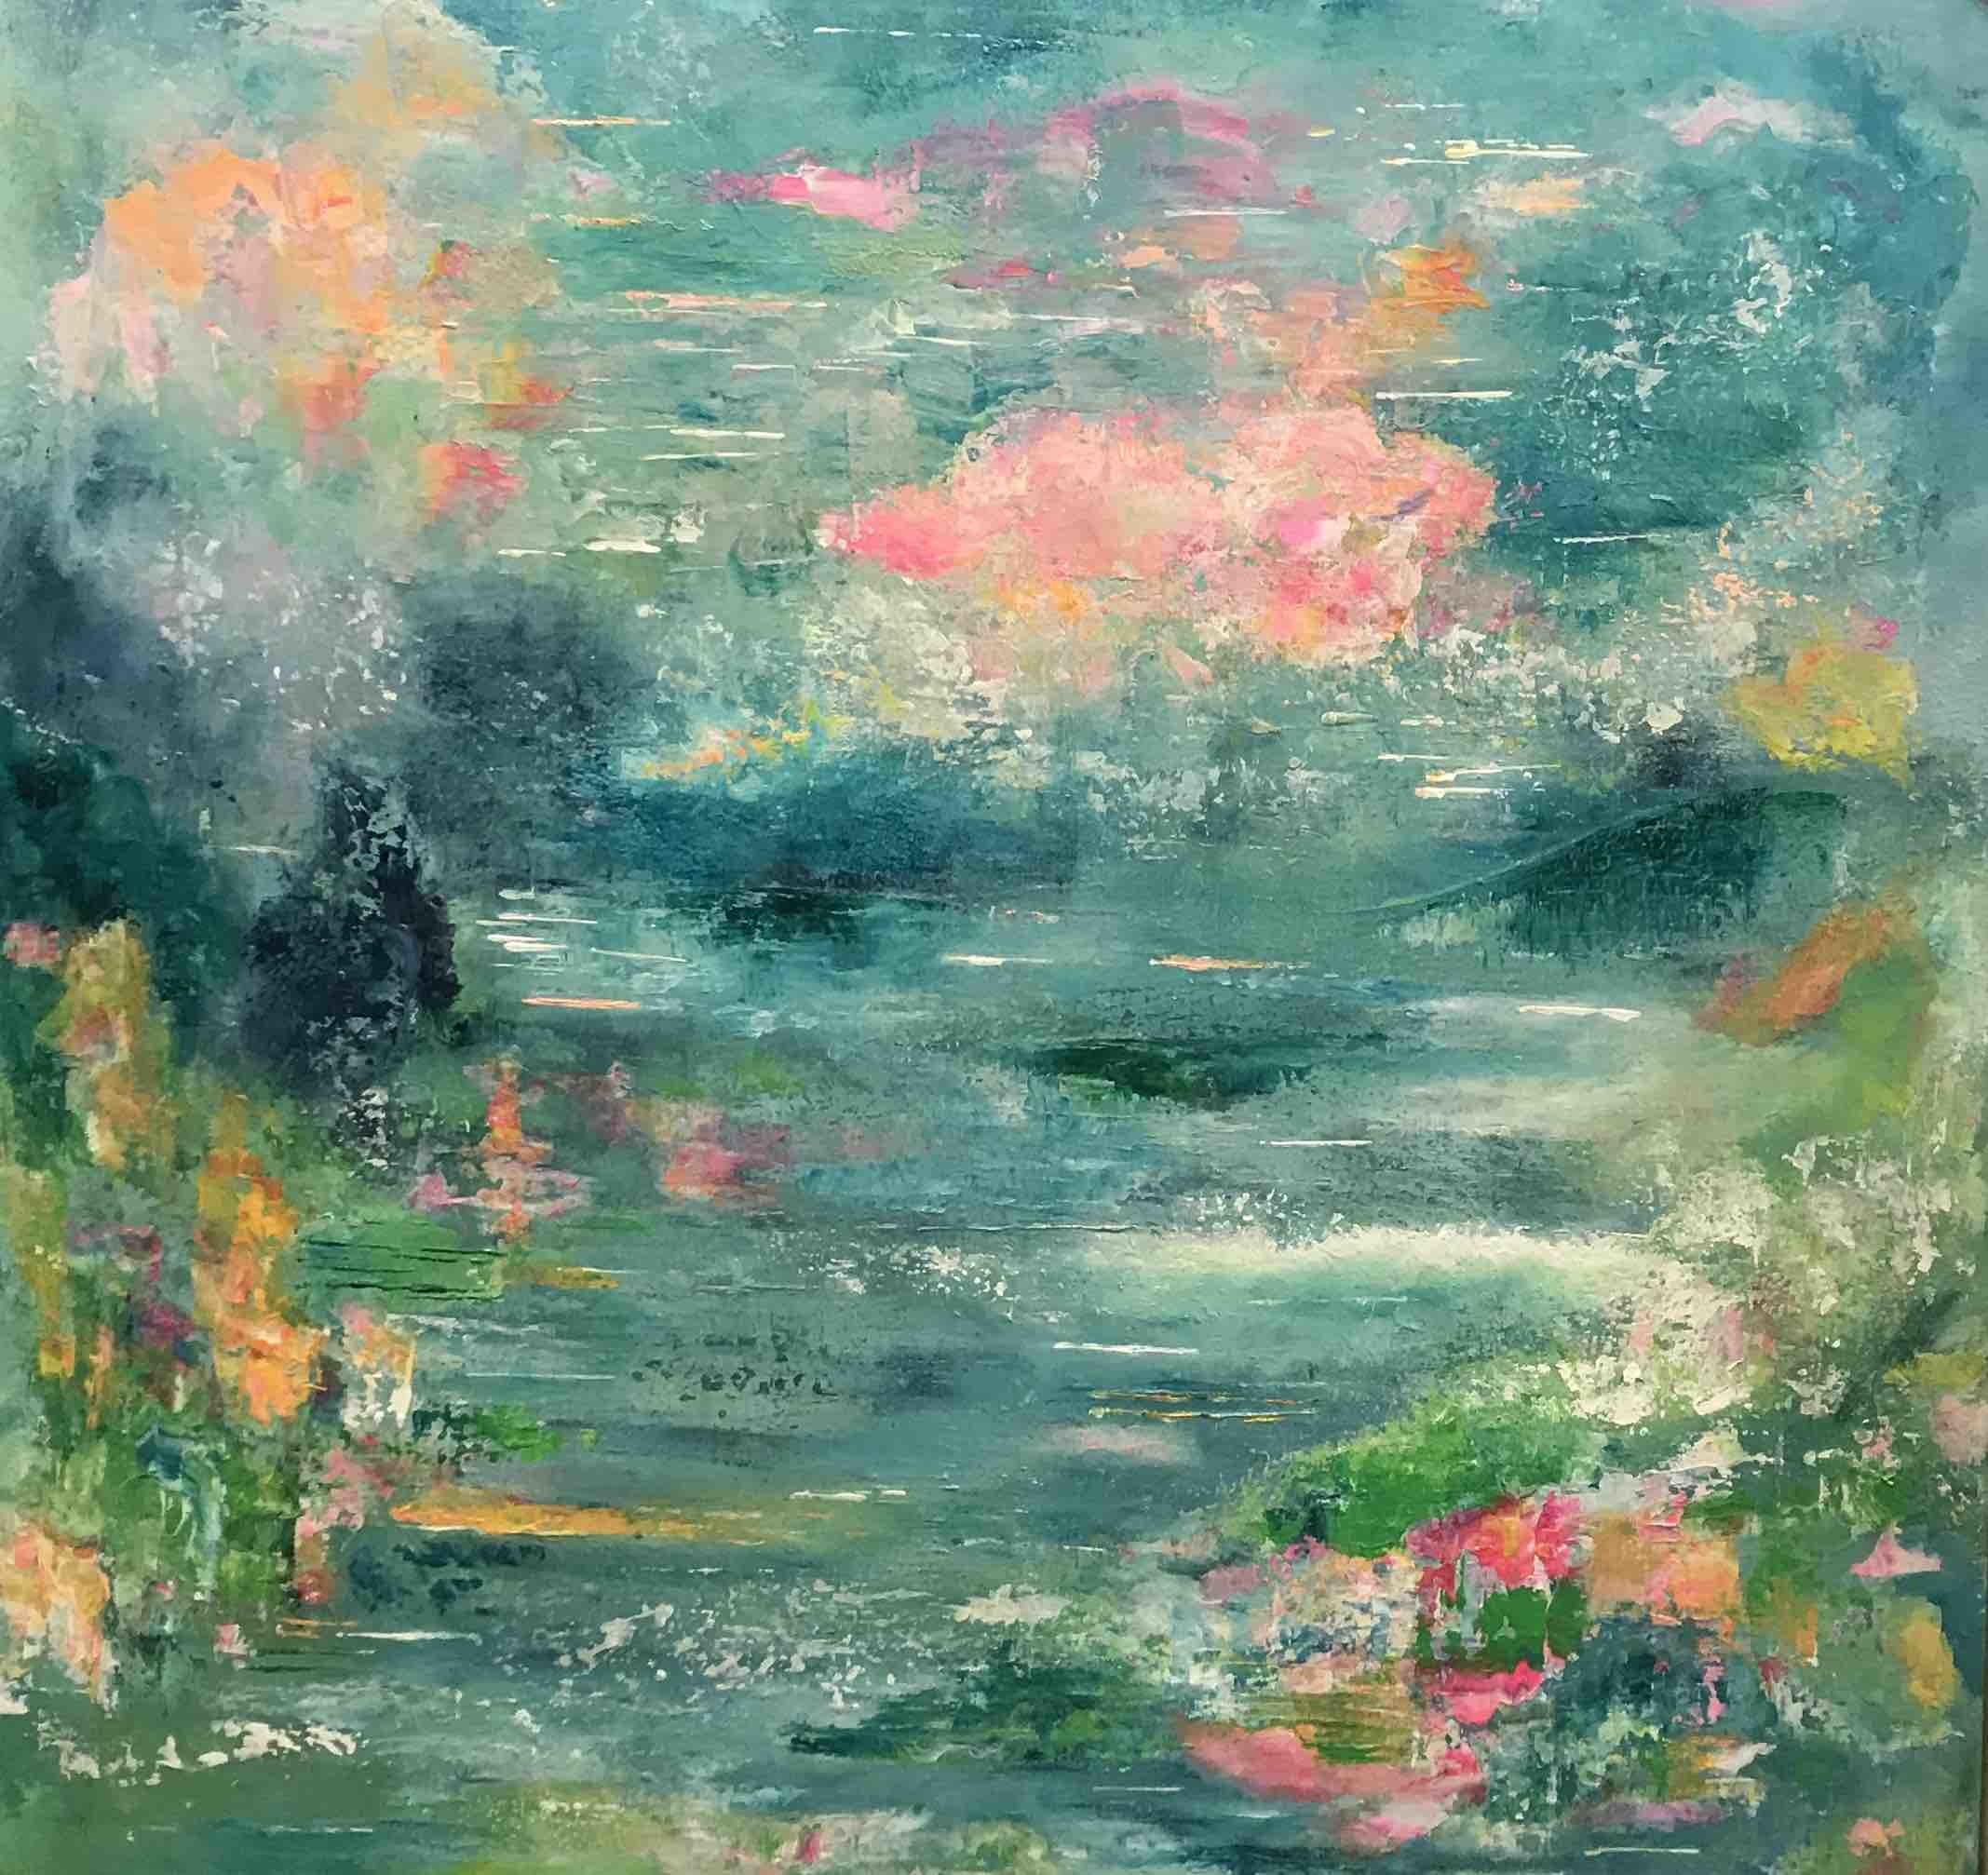 "<span class=""link fancybox-details-link""><a href=""/artists/38-linda-franklin/works/2897-linda-franklin-salmon-skies/"">View Detail Page</a></span><div class=""artist""><strong>Linda Franklin</strong></div> <div class=""title""><em>Salmon Skies</em></div> <div class=""medium"">Acrylic on Canvas</div> <div class=""dimensions"">90 x 90 cm </div><div class=""price"">£1,950.00</div><div class=""copyright_line"">Copyright The Artist</div>"